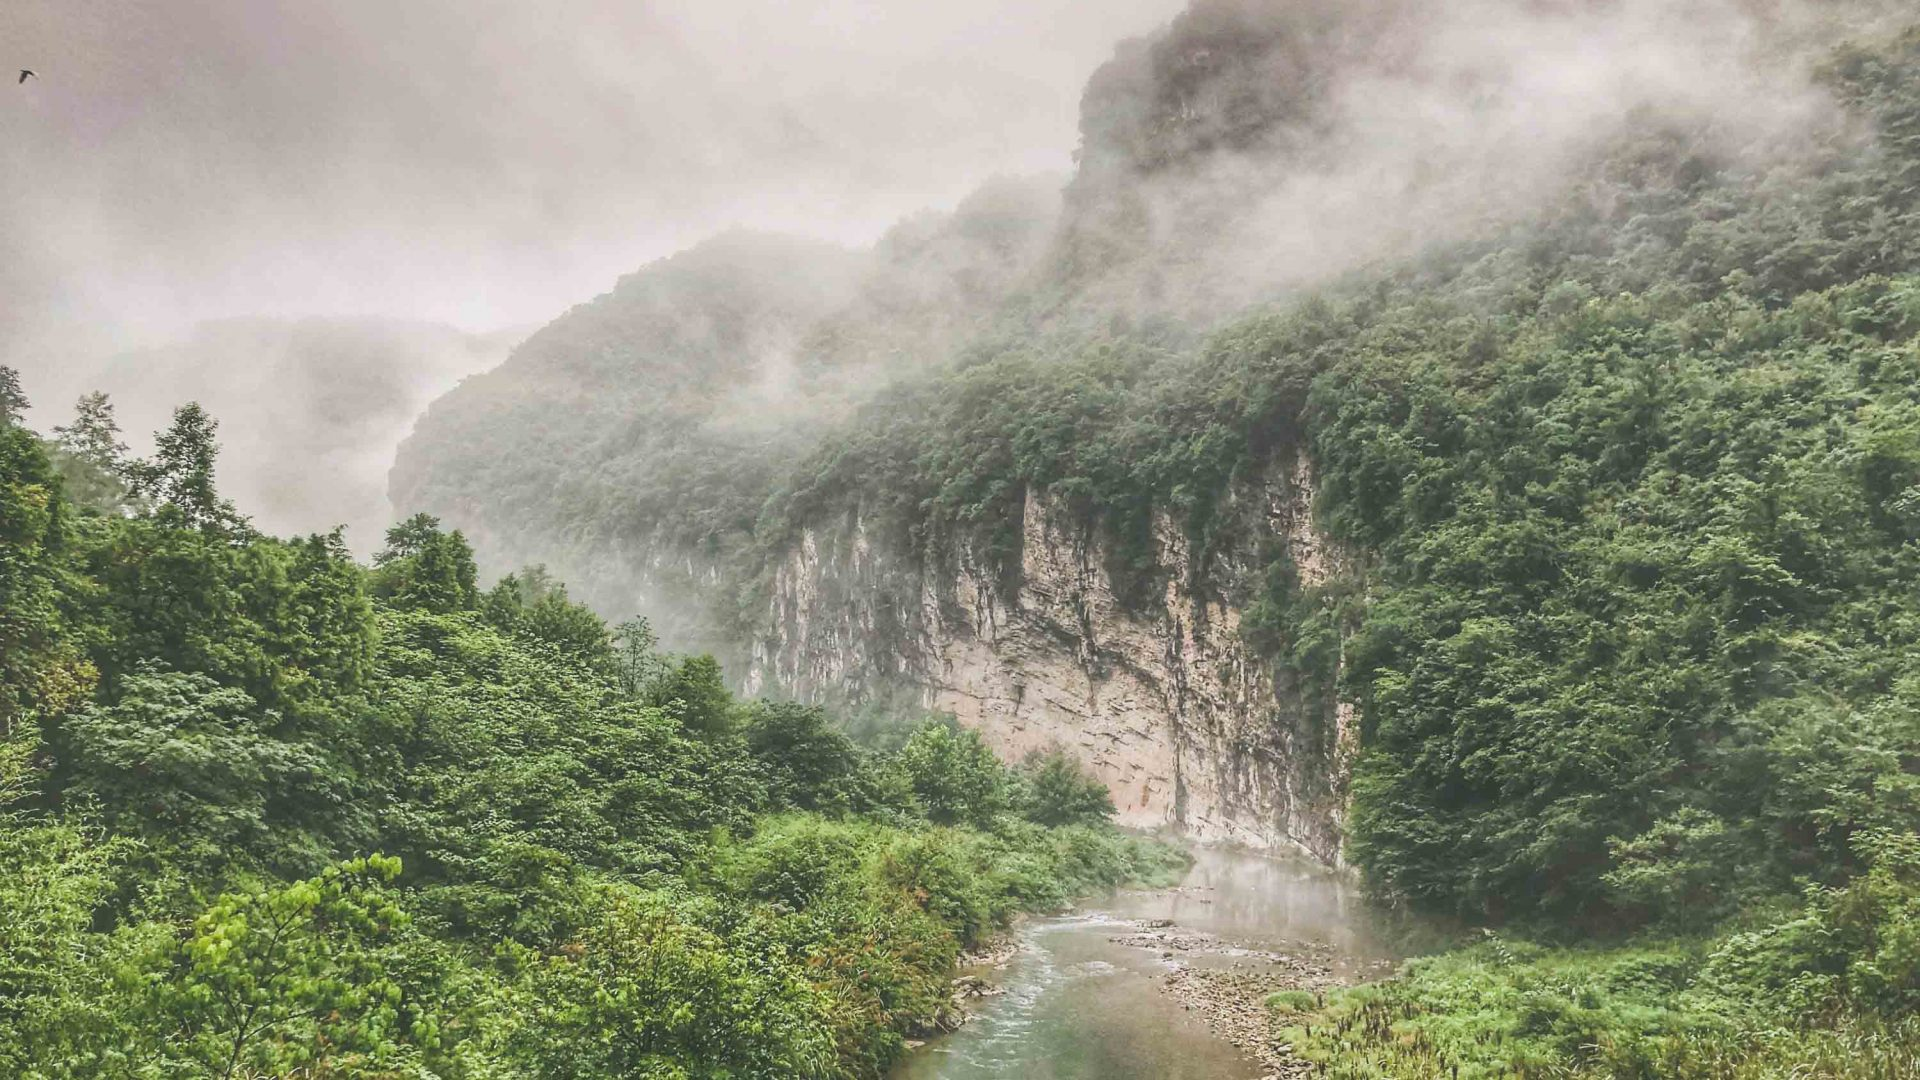 Views along a local river system in the Zhangjiajie countryside in China's Hunan Province.